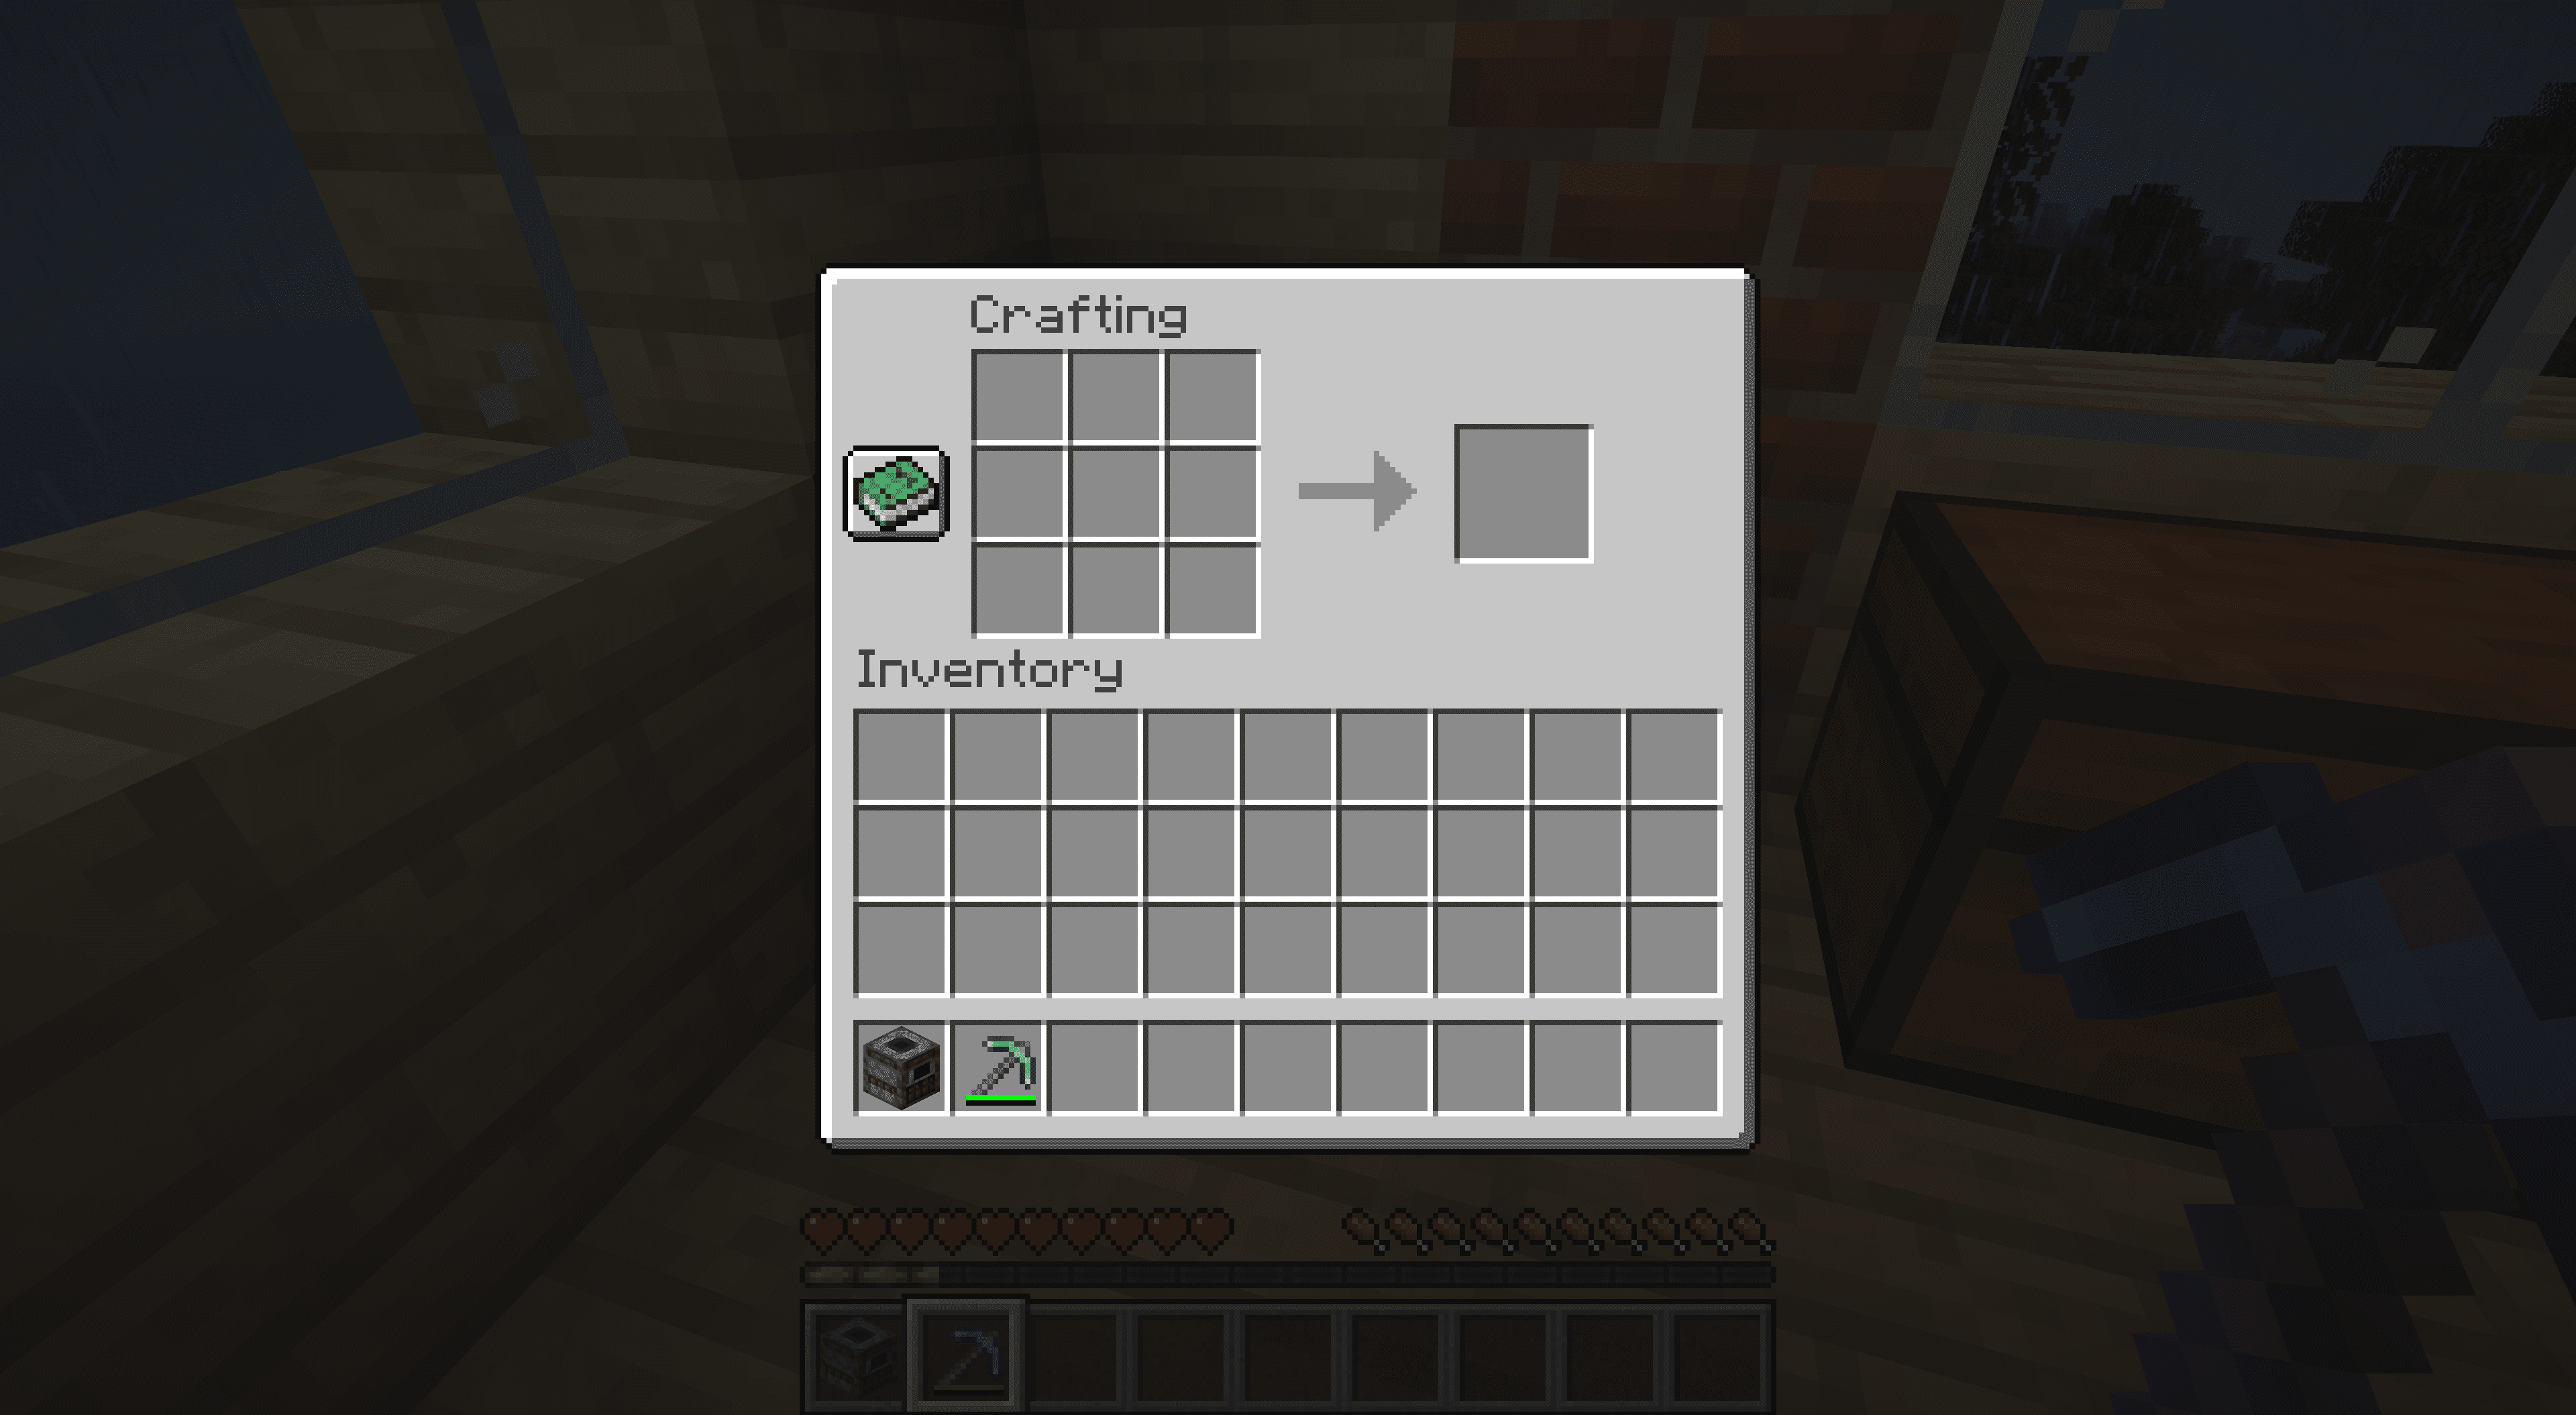 Moving a smoker to your inventory in Minecraft.